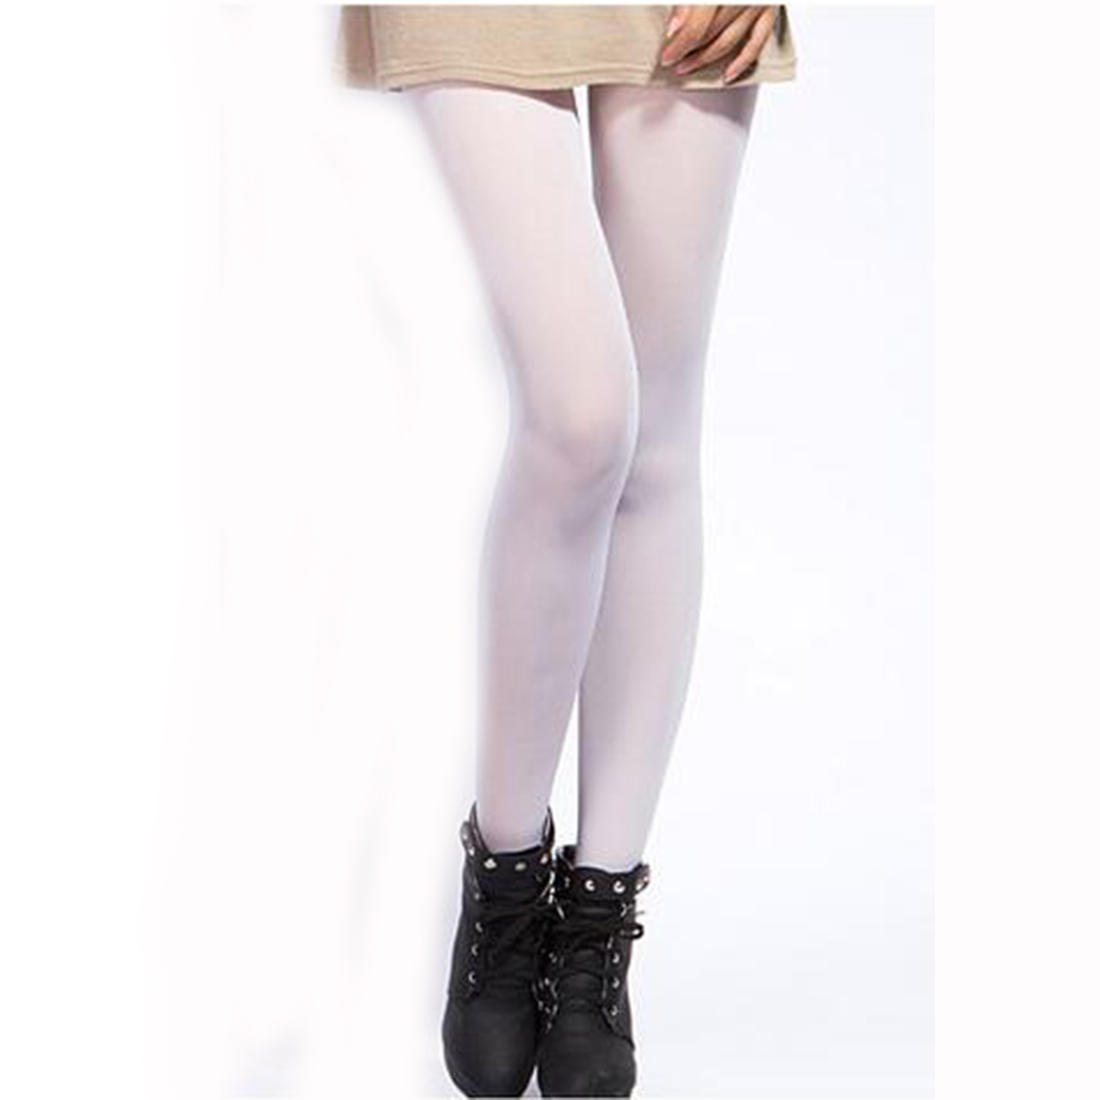 290e90a4a12 2017 Hot Fashion Woman Velvet 100D Pantyhose Multi colour Tights Women For  Spring Autumn Winter-in Tights from Underwear   Sleepwears on  Aliexpress.com ...